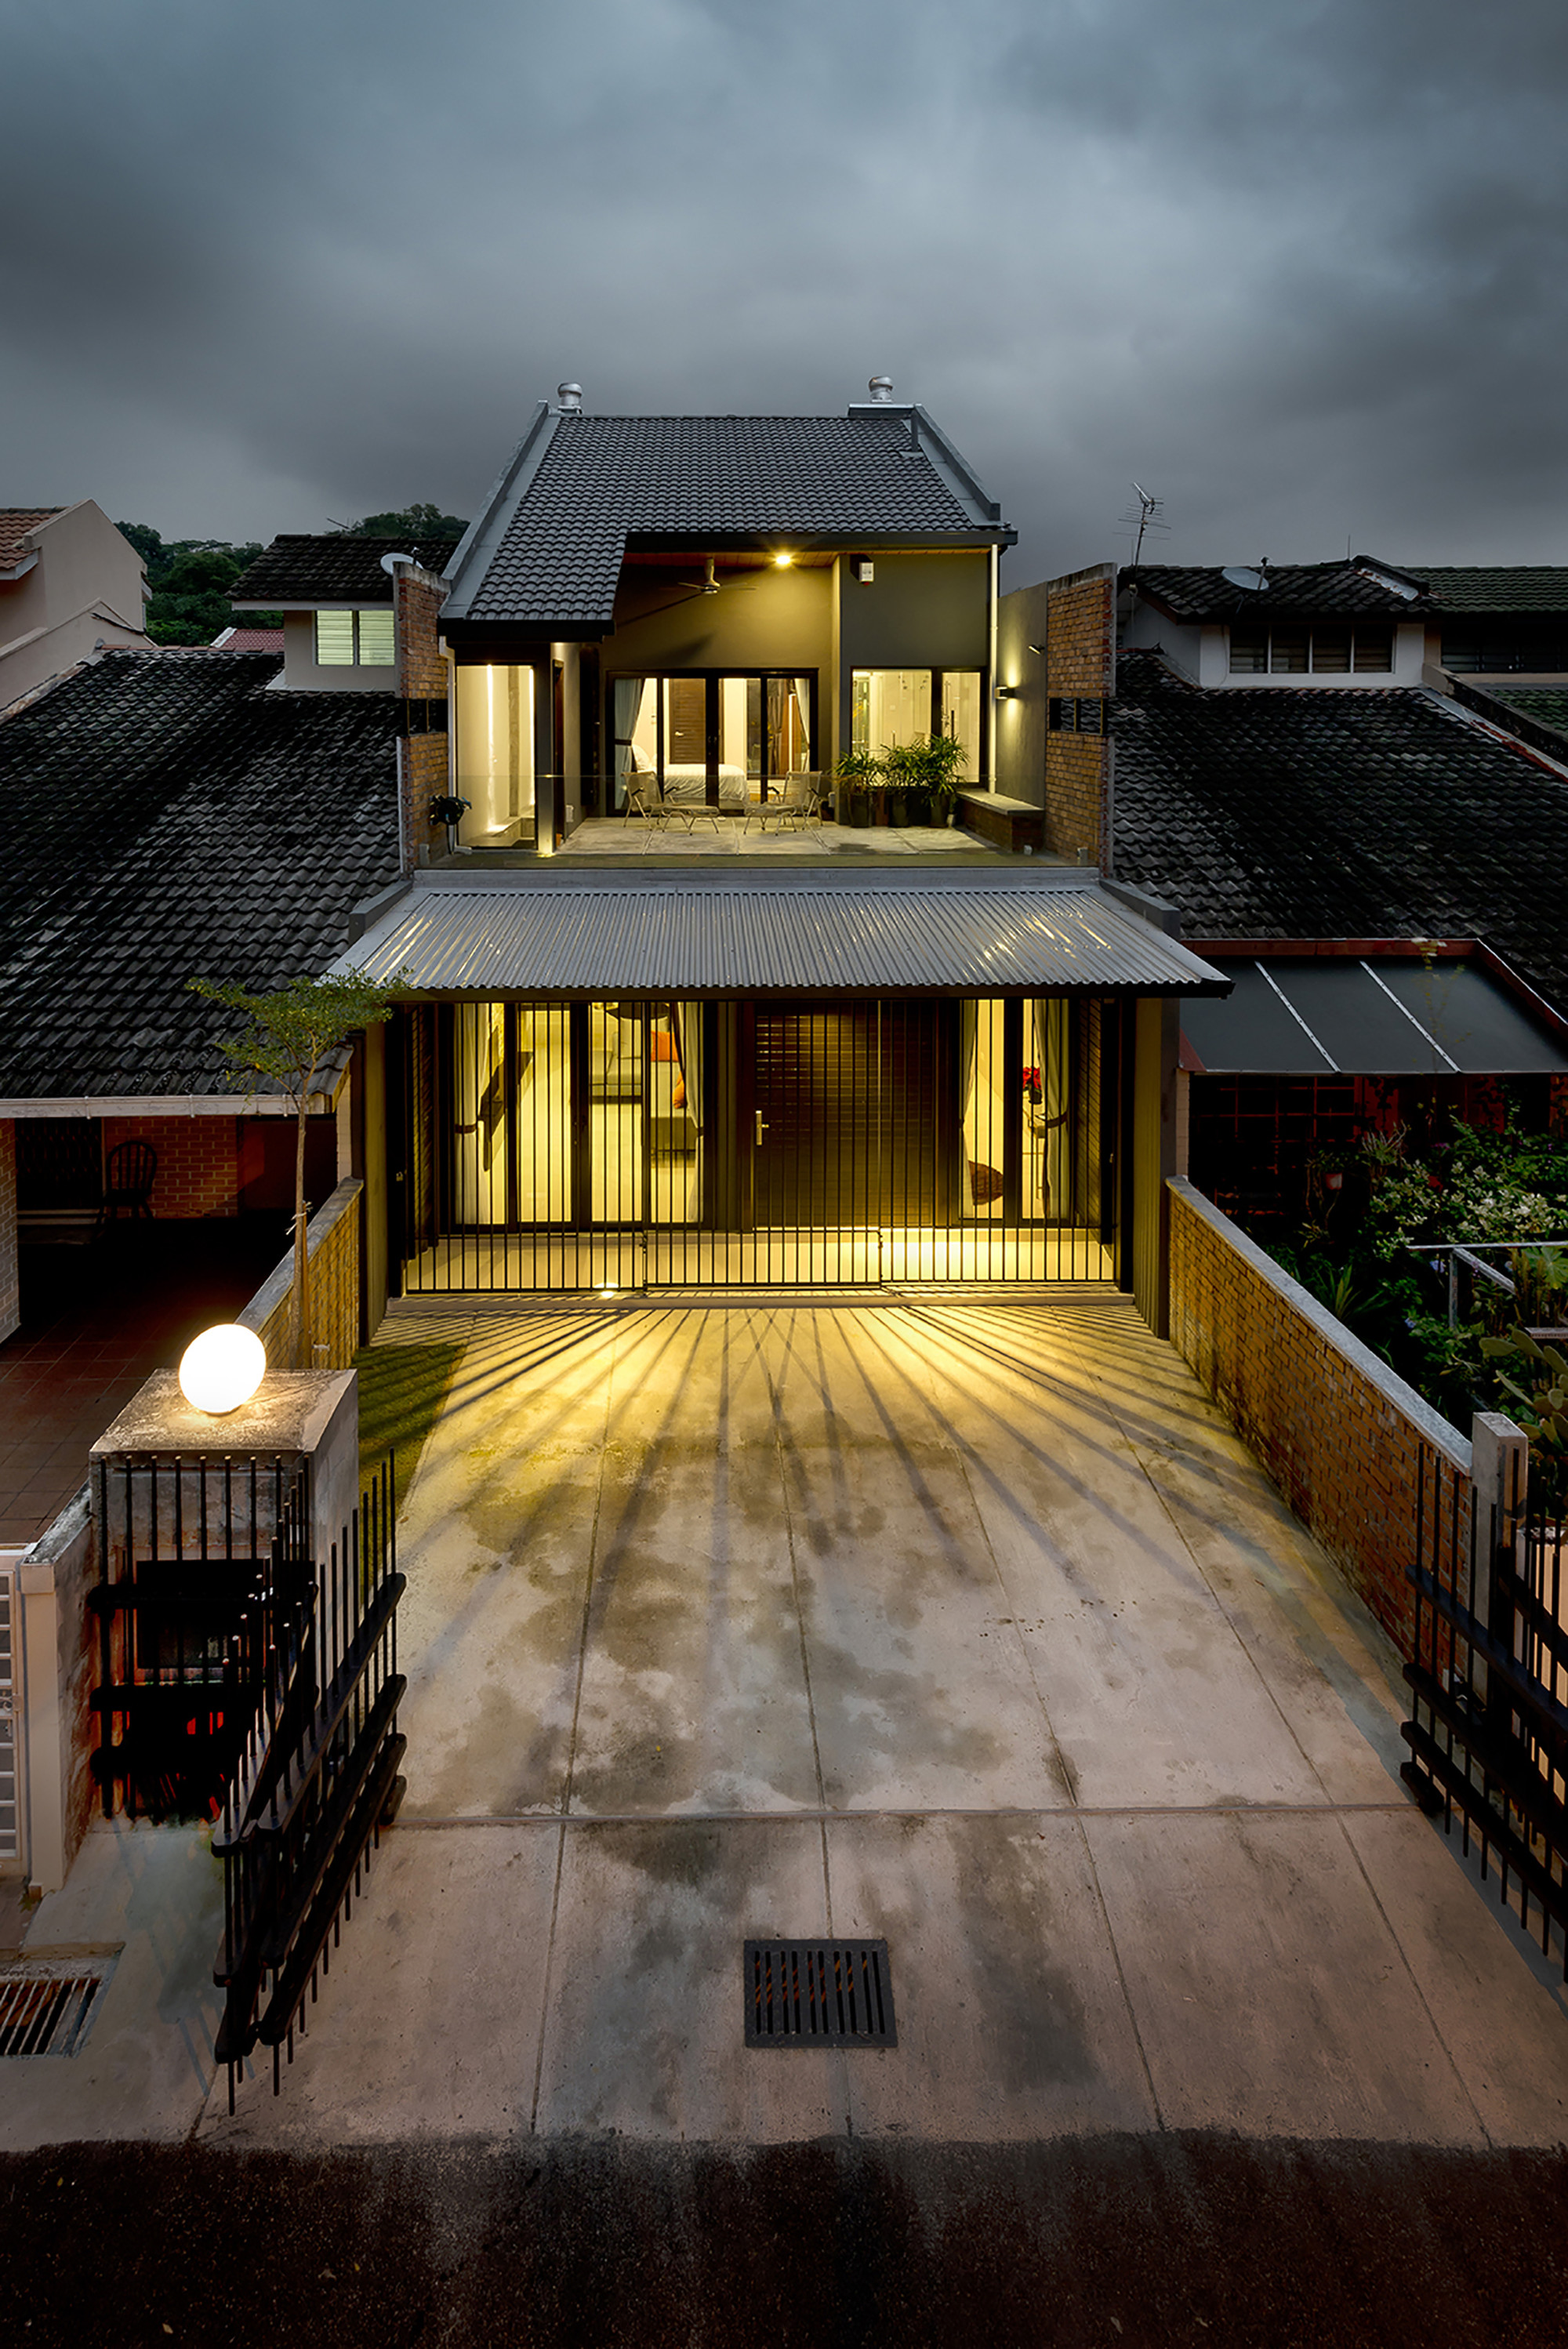 Gallery of 23 terrace drtan lm architect 8 for Season 2 terrace house